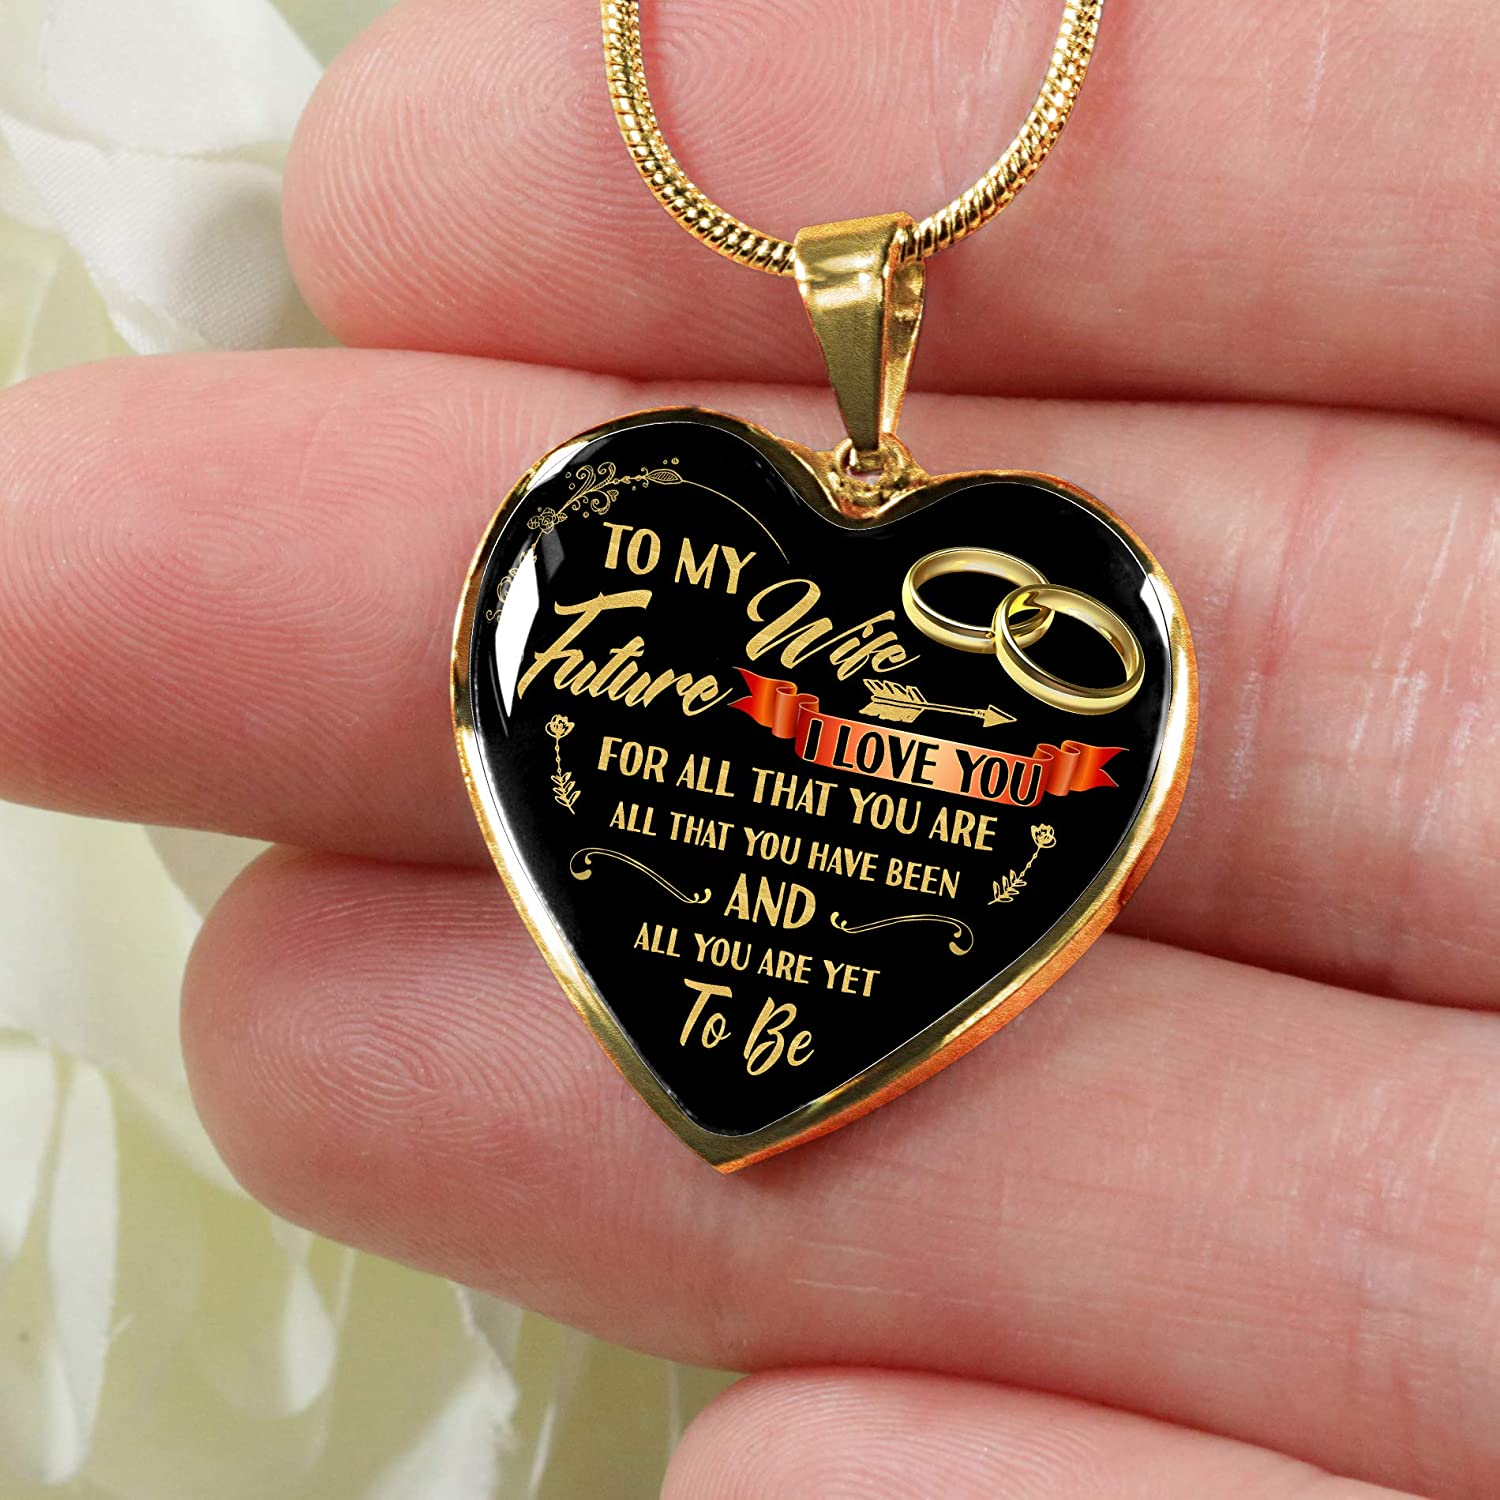 Future Wife Gold Heart Pendant for Women Engagement Gift SmallWonderGifts Valentines Day to My Fianc/é Necklace Birthday Jewelry